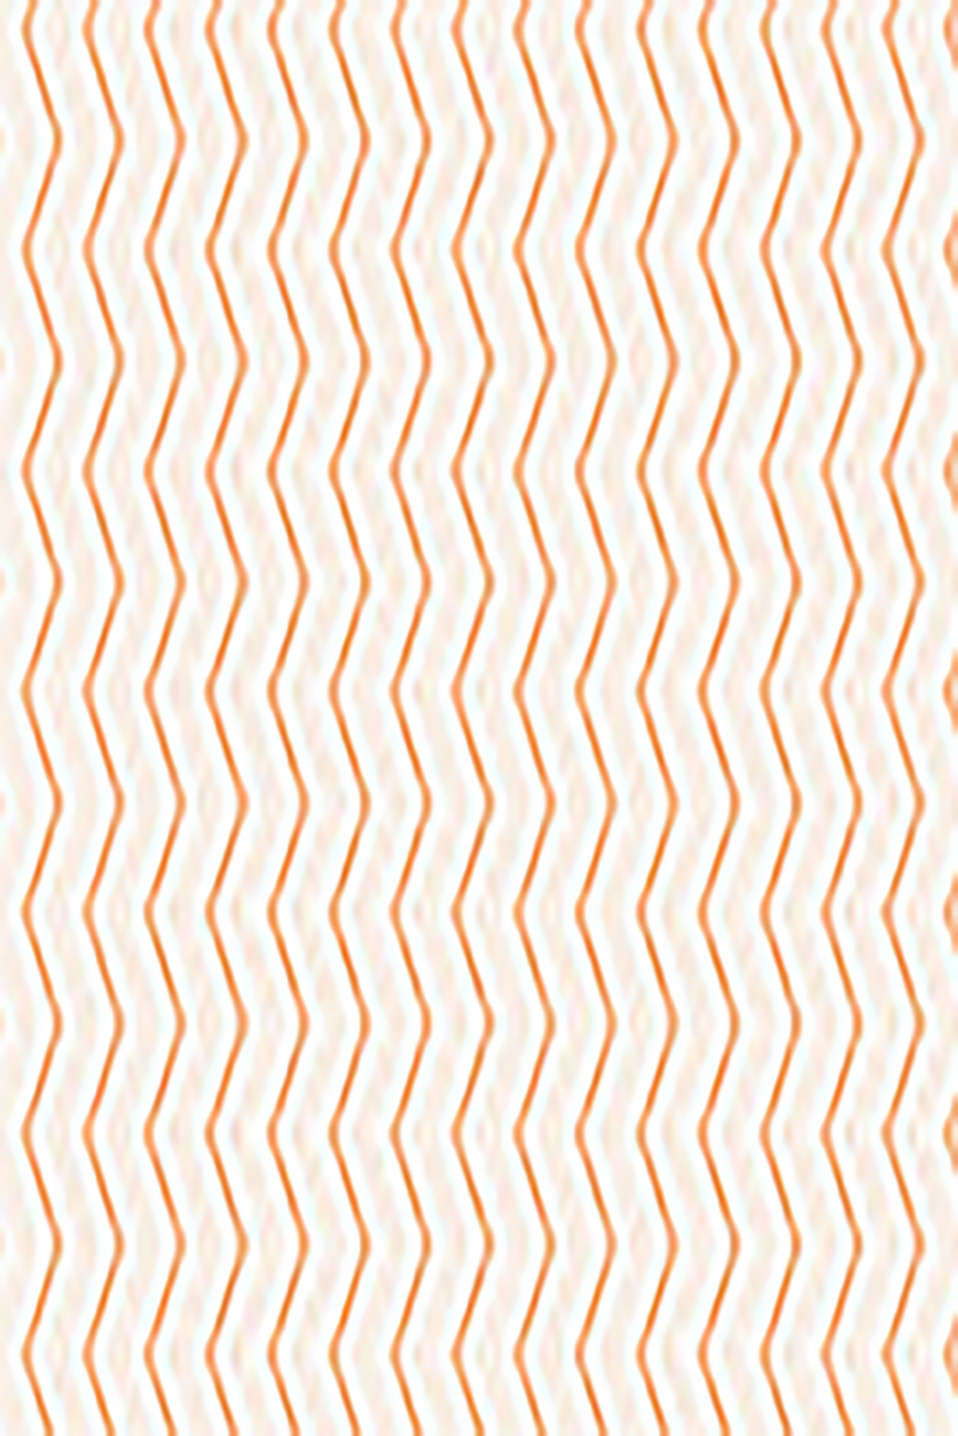 Zigzag wallpaper